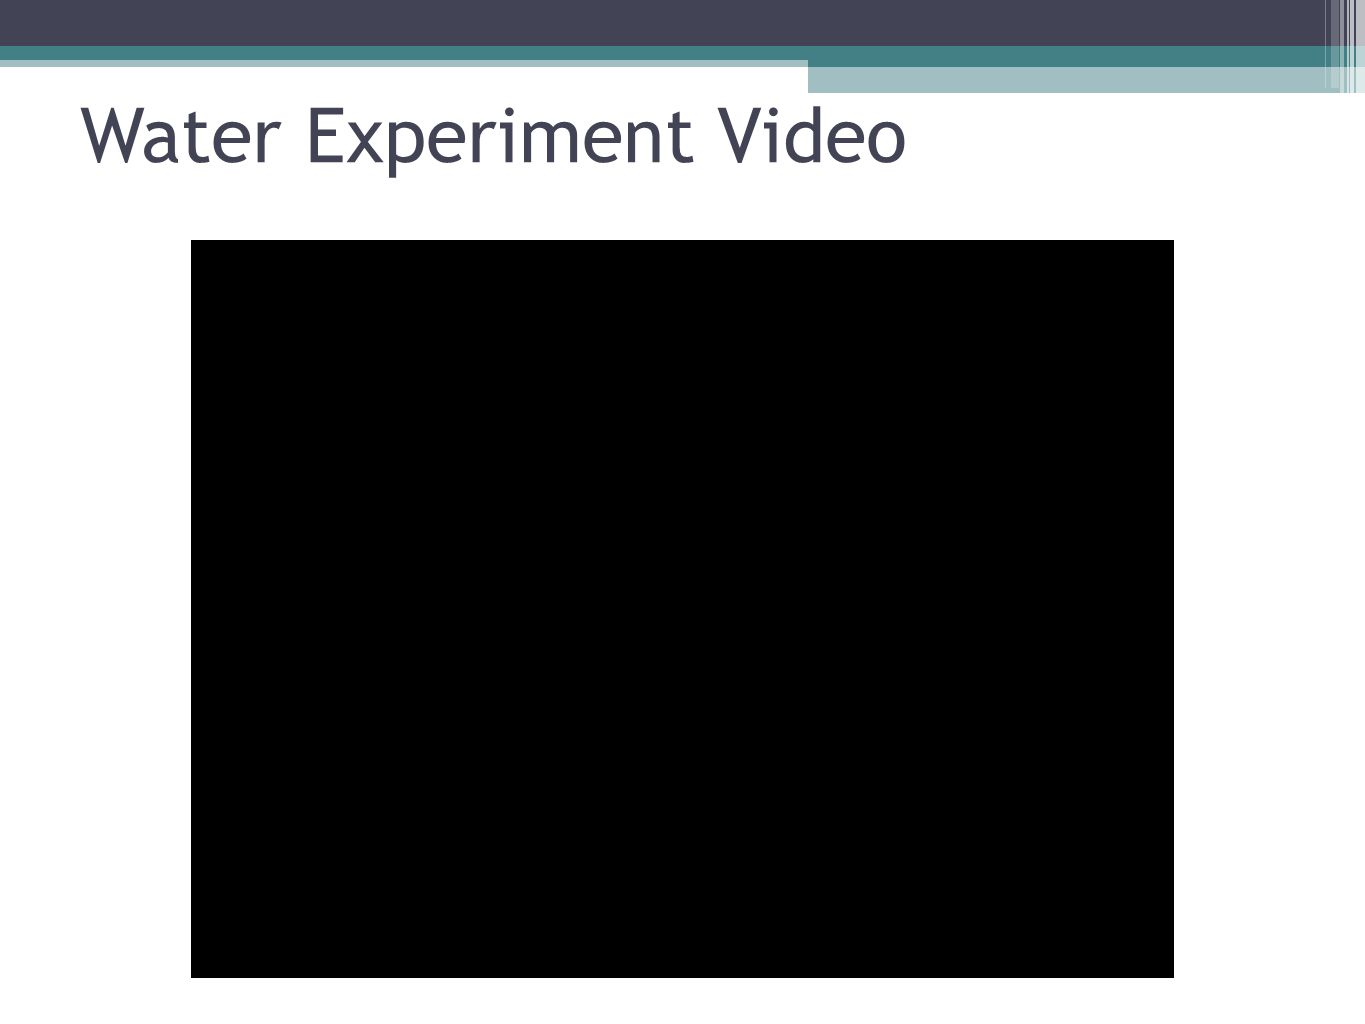 Water Experiment Video